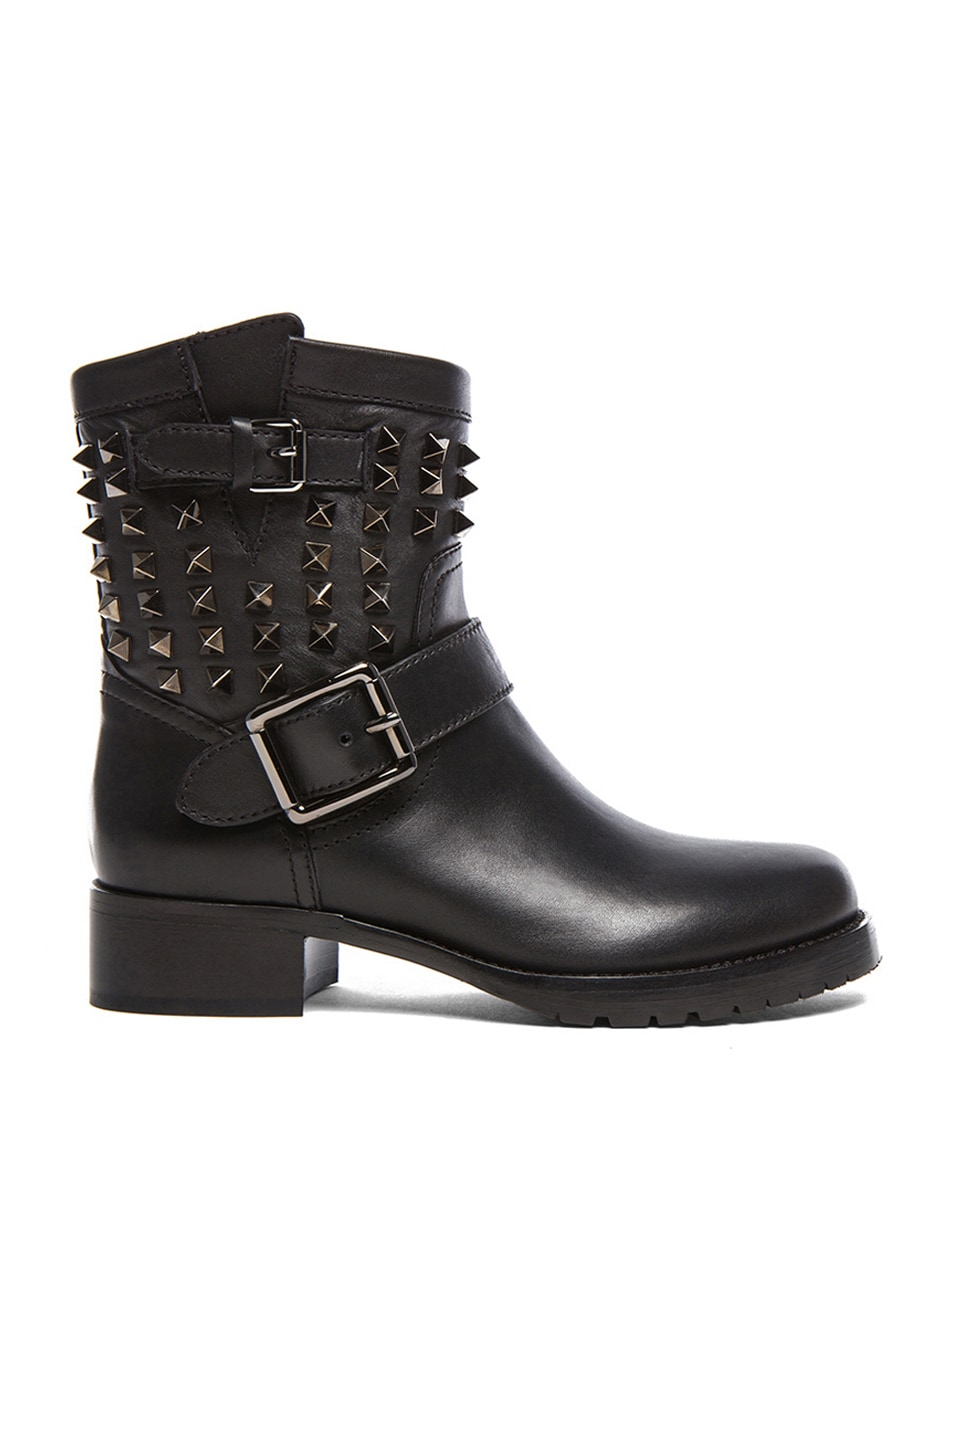 Image 1 of Valentino Rockstud Noir Leather Biker Boots T.30 in Black